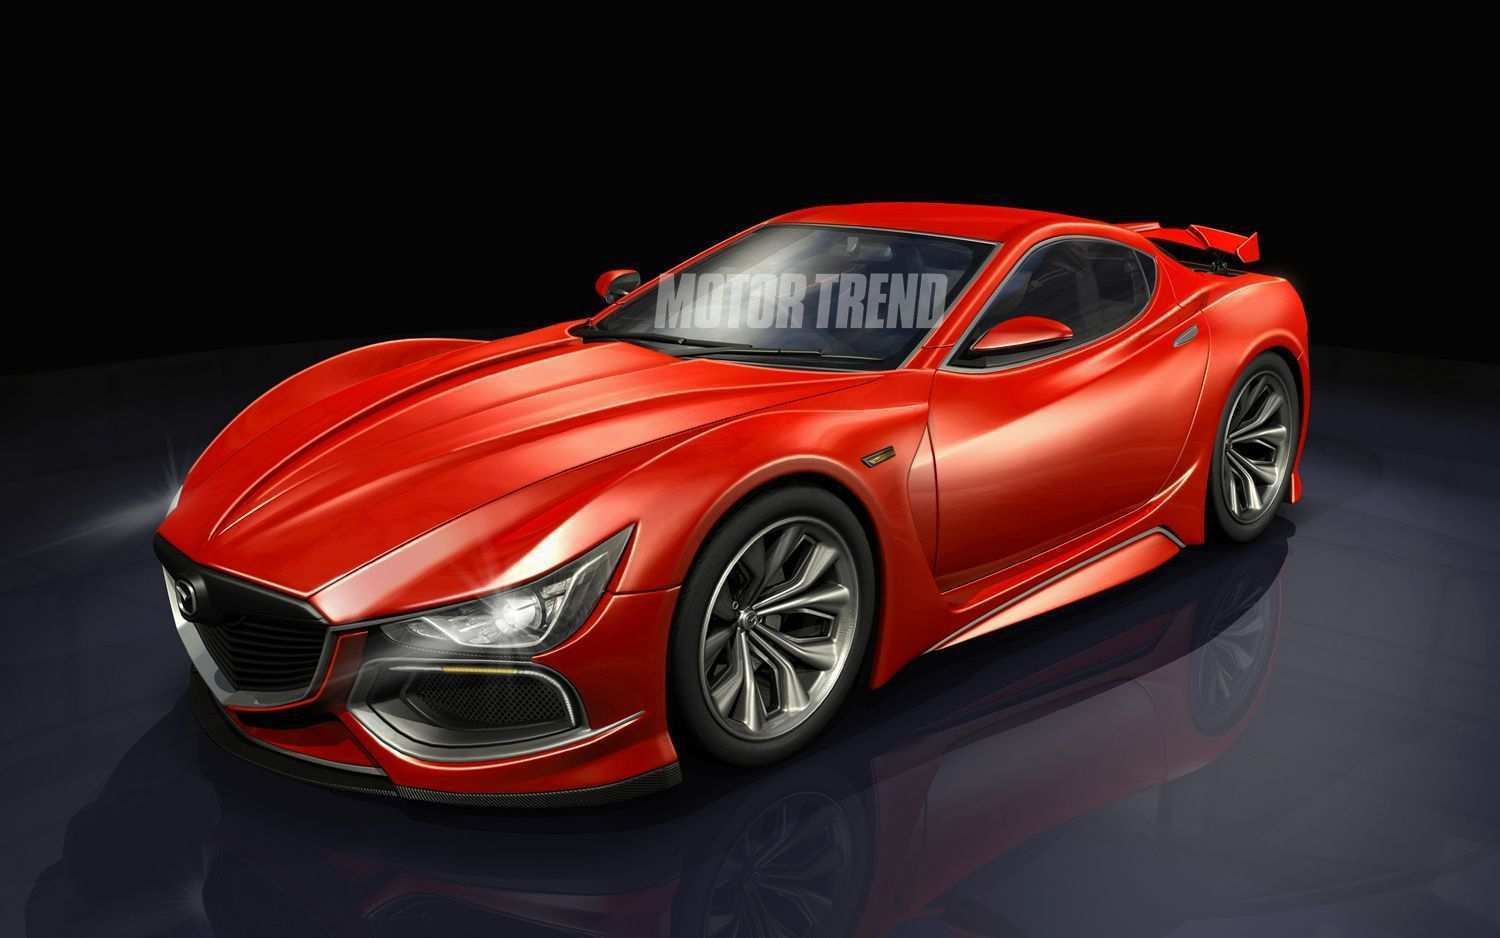 60 The Best 2020 Mazda RX7 Concept And Review